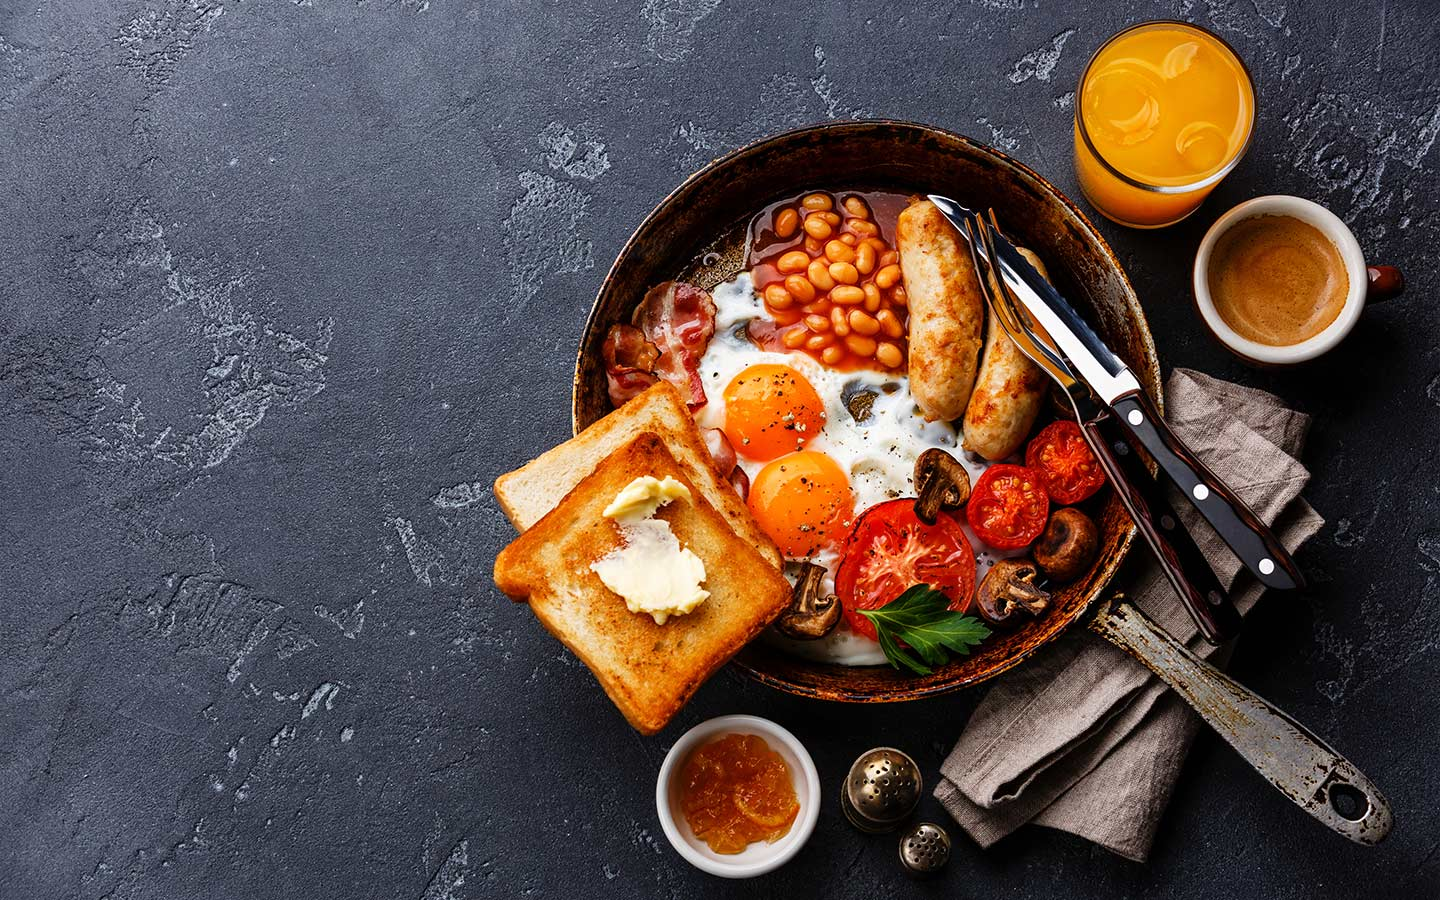 View of an English breakfast, that is popular at places that serve all day breakfast in Dubai